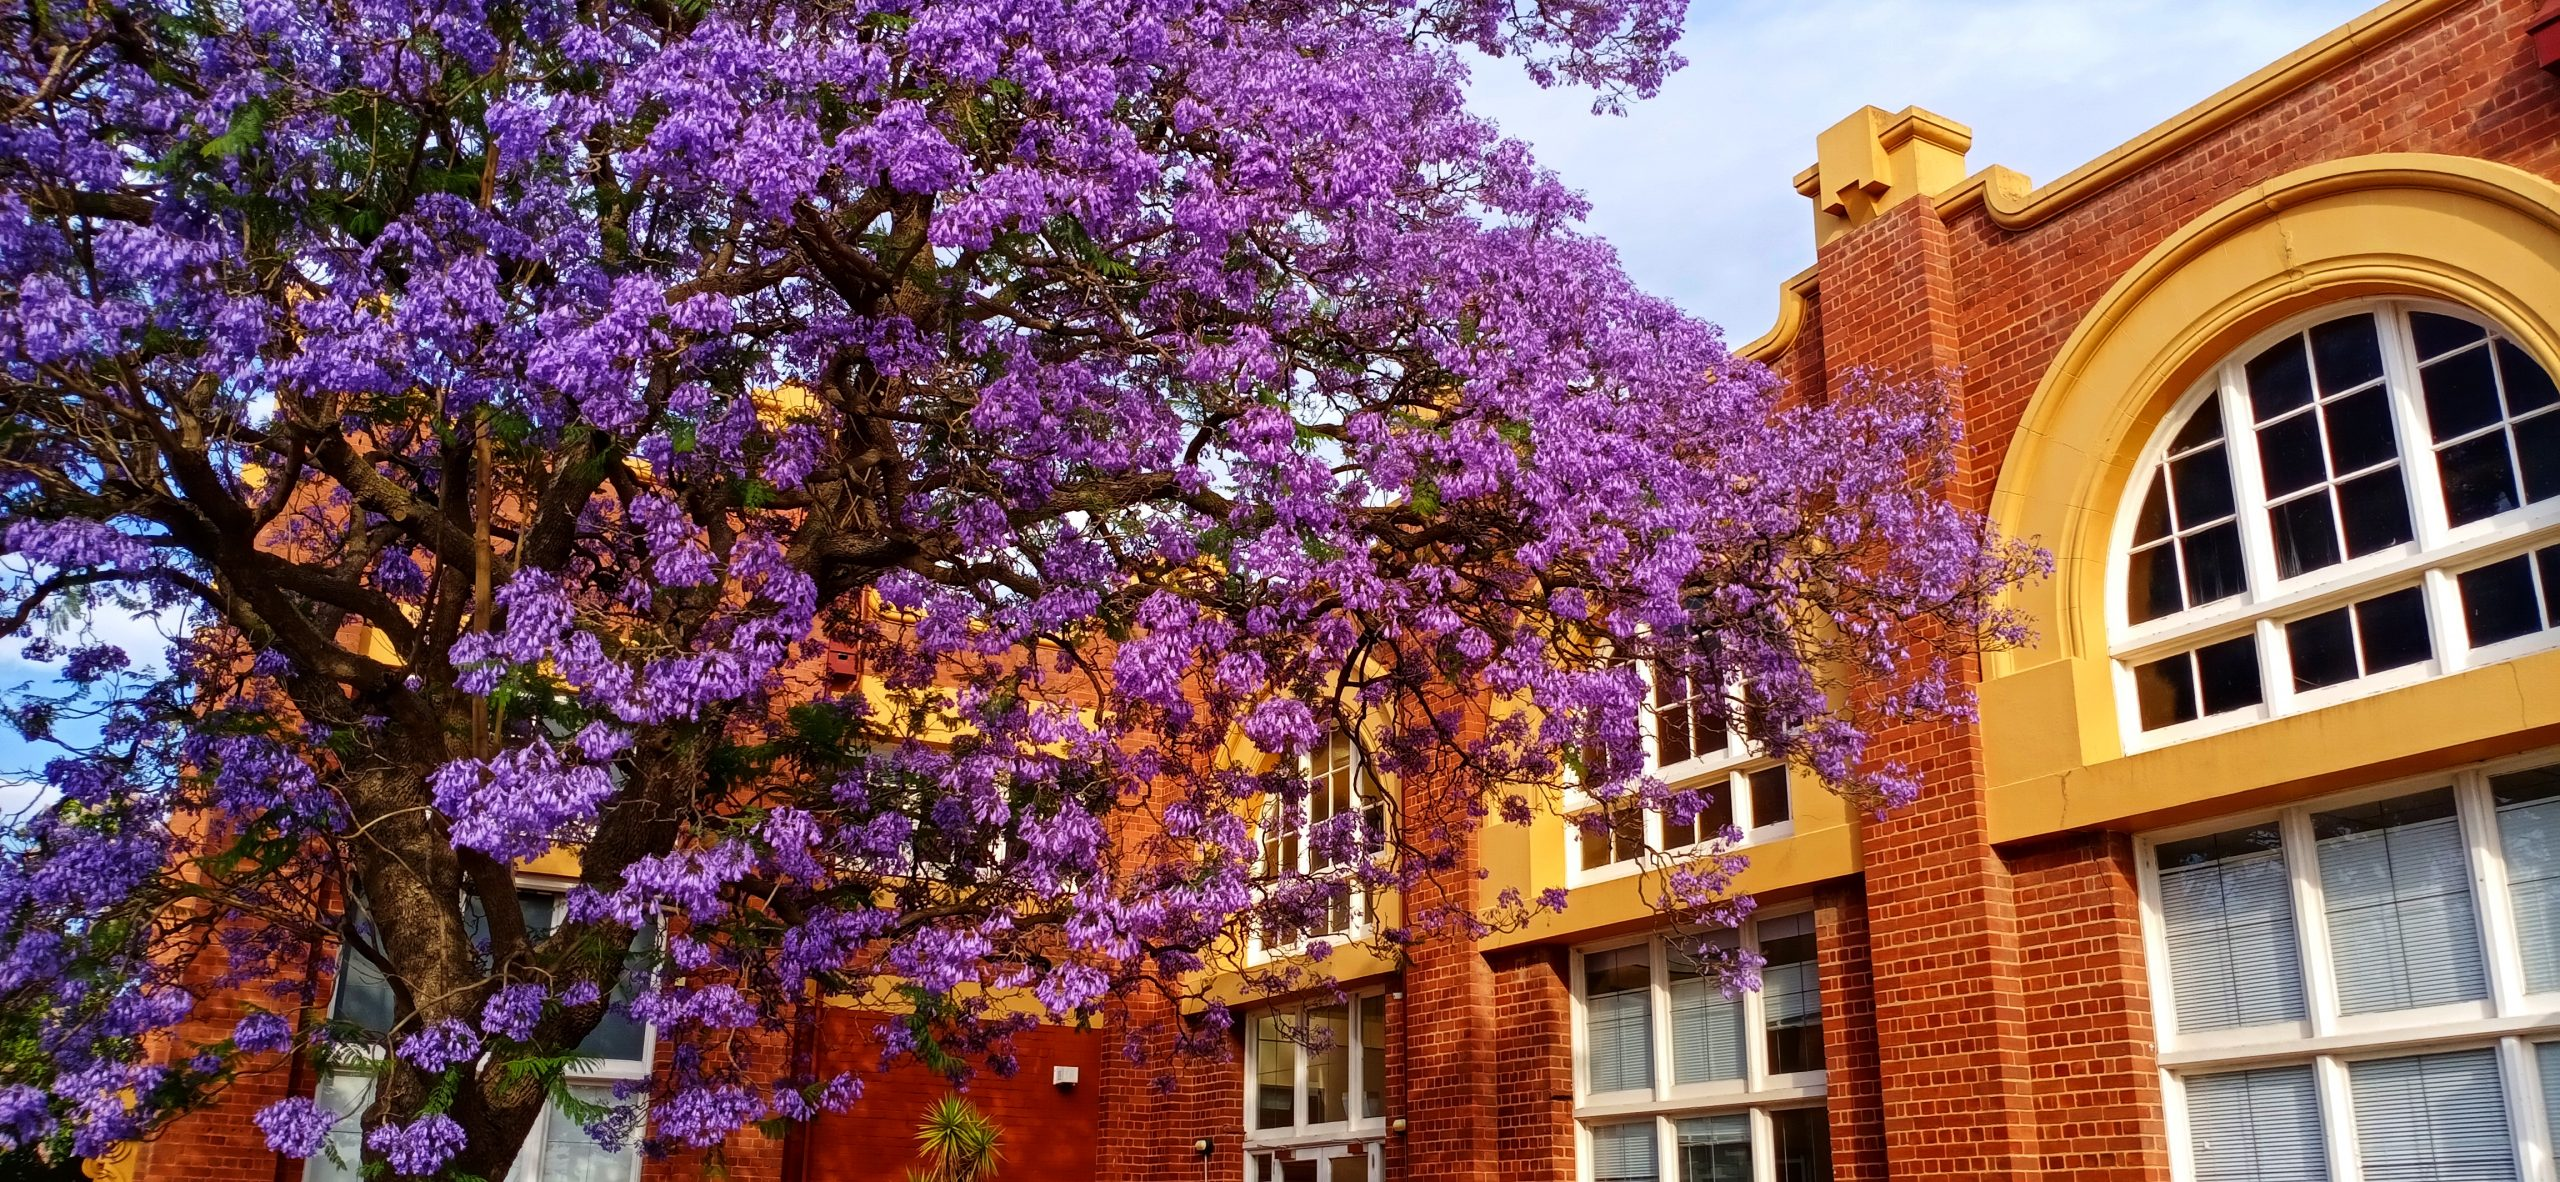 Tree with a Purple Flower